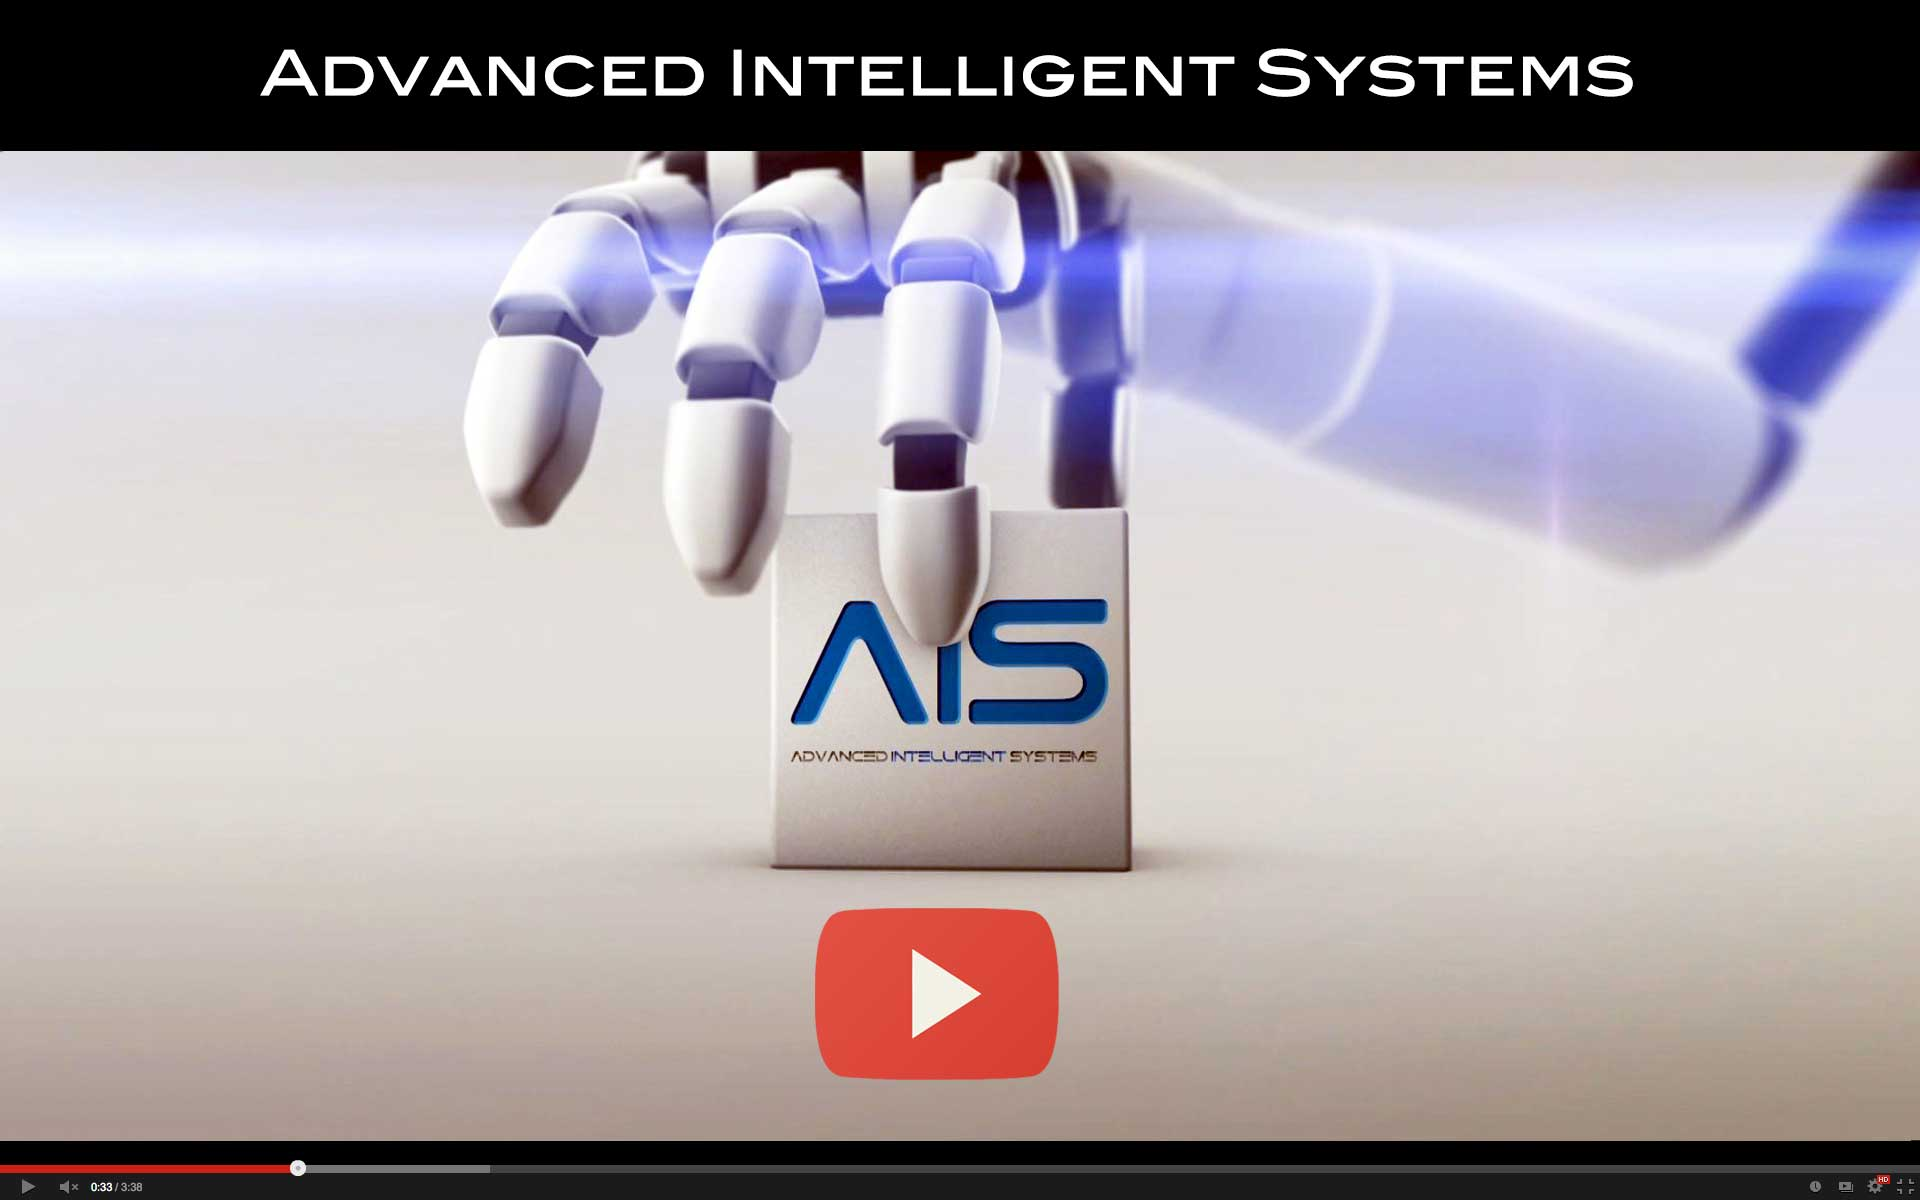 AIS -Advanced Intelligent Systems